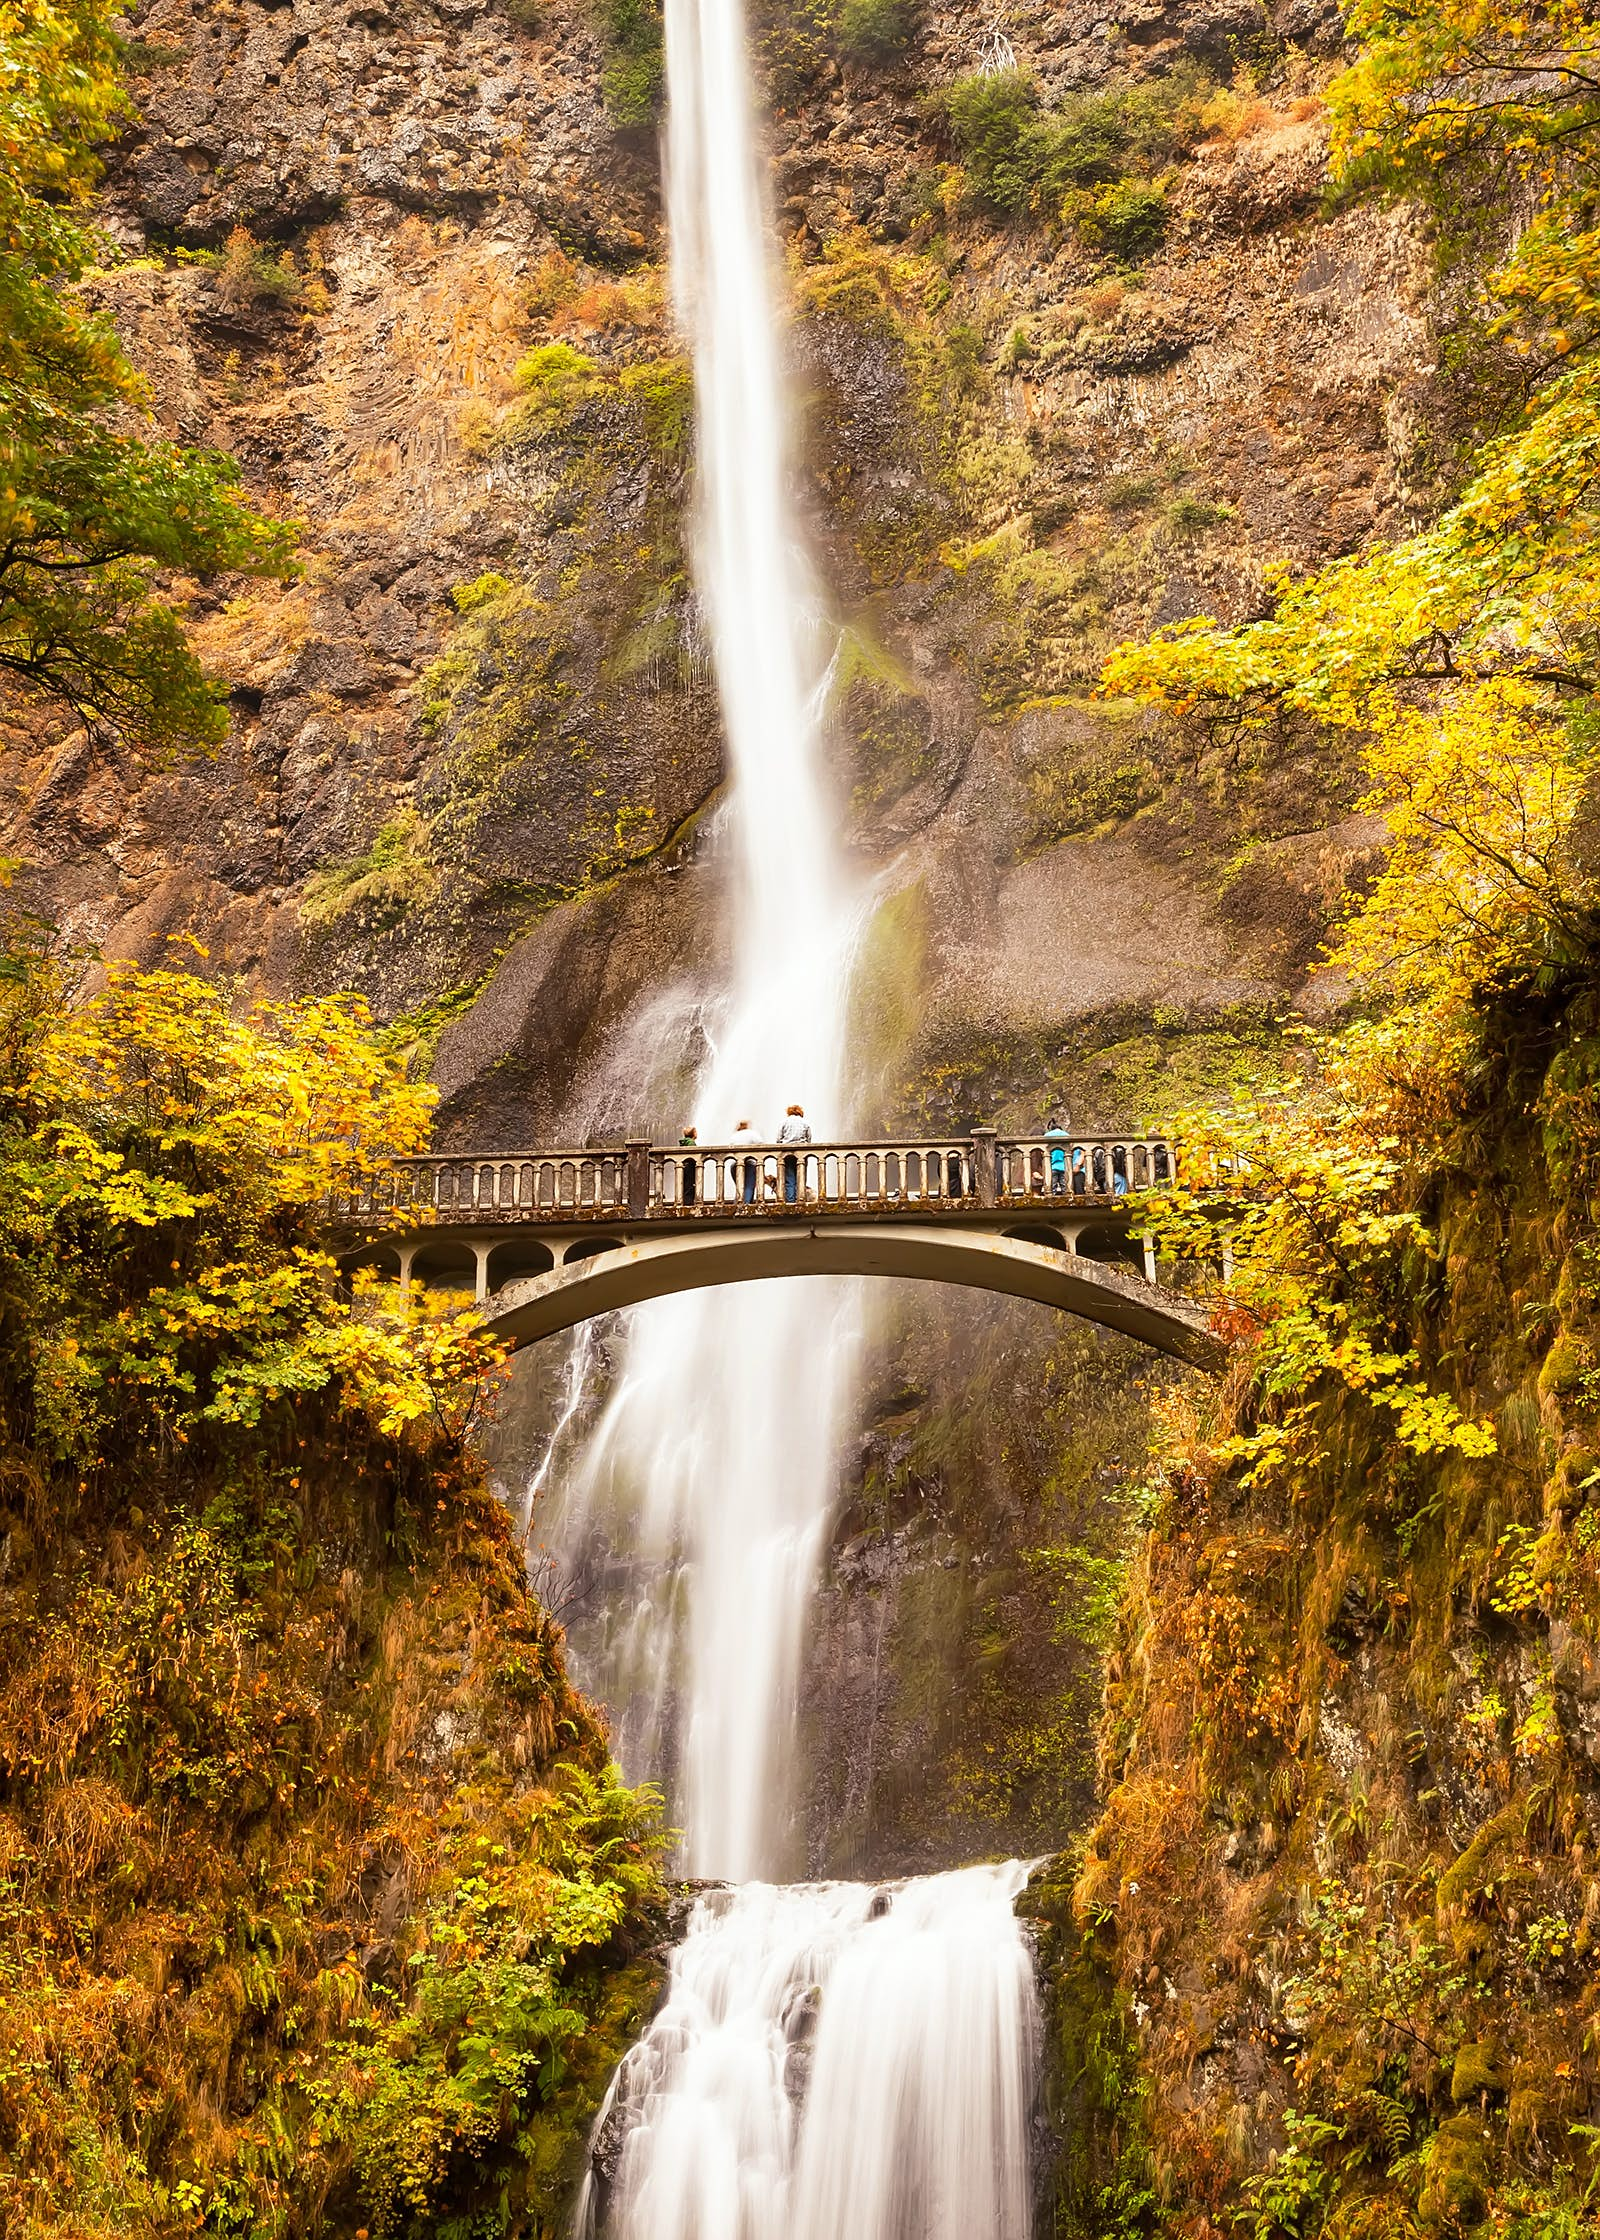 People on a bridge looking up at the long, thin waterfall cascading down and flowing onwards below the bridge. Yellow and brown foliage is all over the surrounding rocks and cliff sides